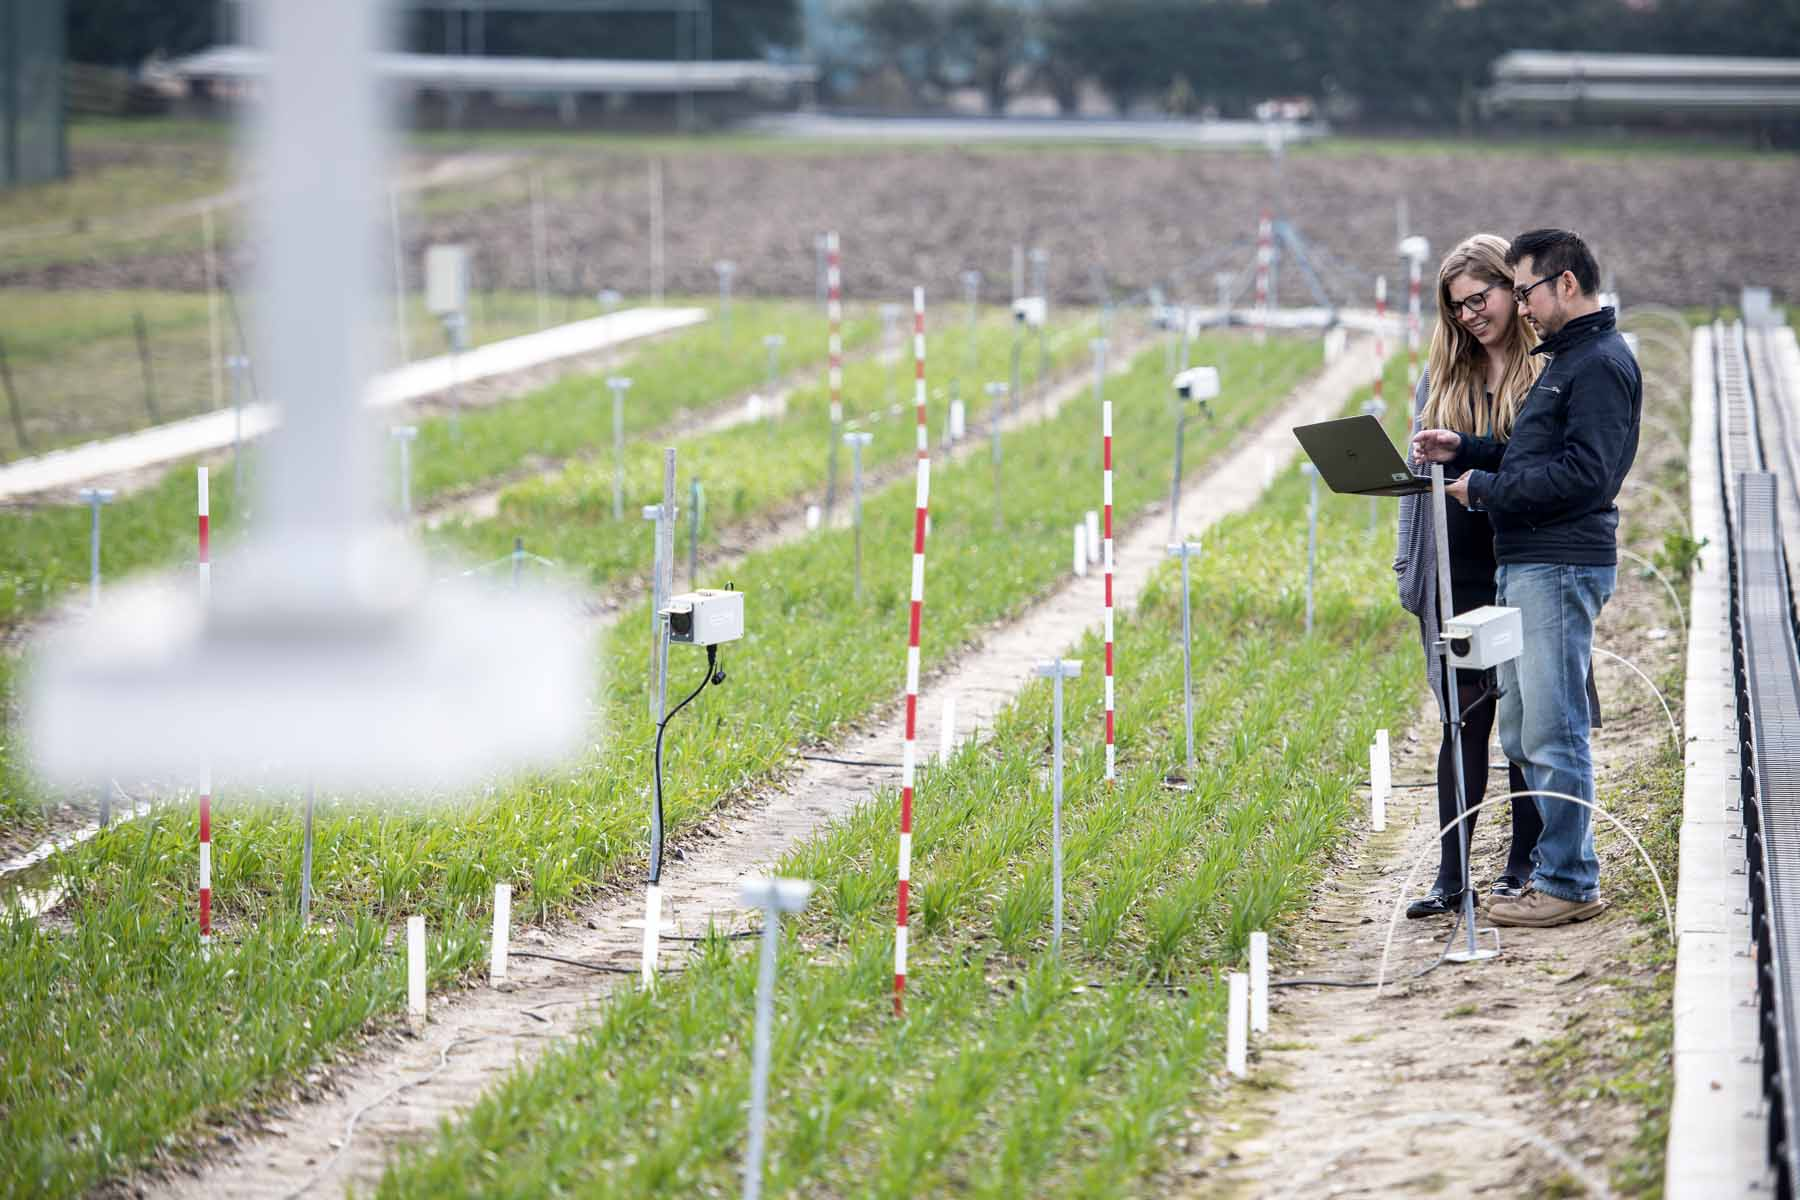 Financial analytics technology tackles 'Big Data' crop research